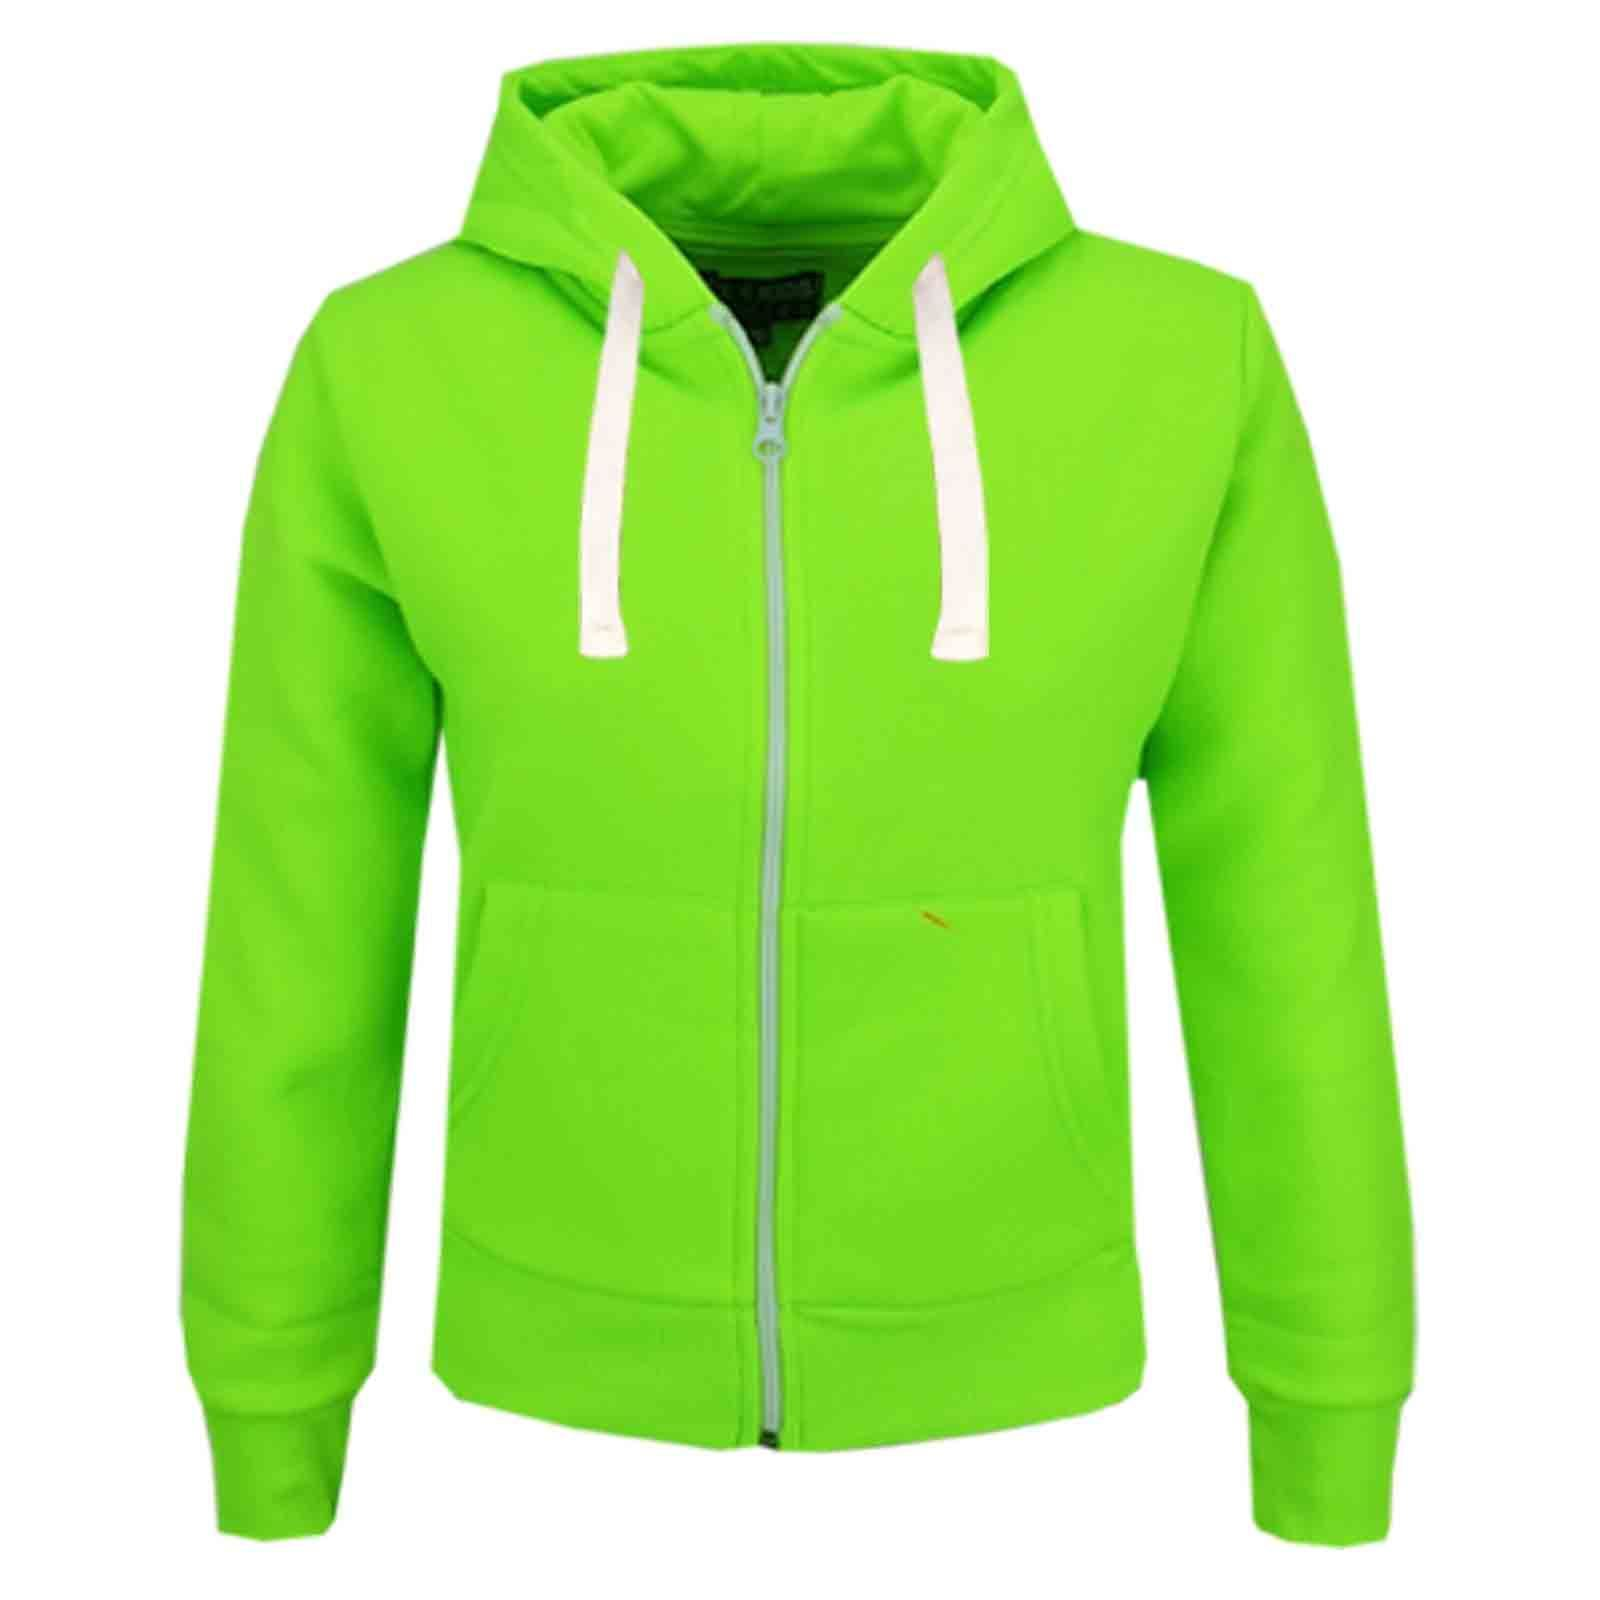 Find hoodies for girls and sweatshirts for women. Zip up and pullover hoodies in a variety of styles and colors. Everyday Free Shipping. Skip to products grid selection. For times when you aren't sure if you will be too hot or too cold, a women's zip up hoodie is the perfect solution. Keep your hoodie unzipped on warmer days or zip it.